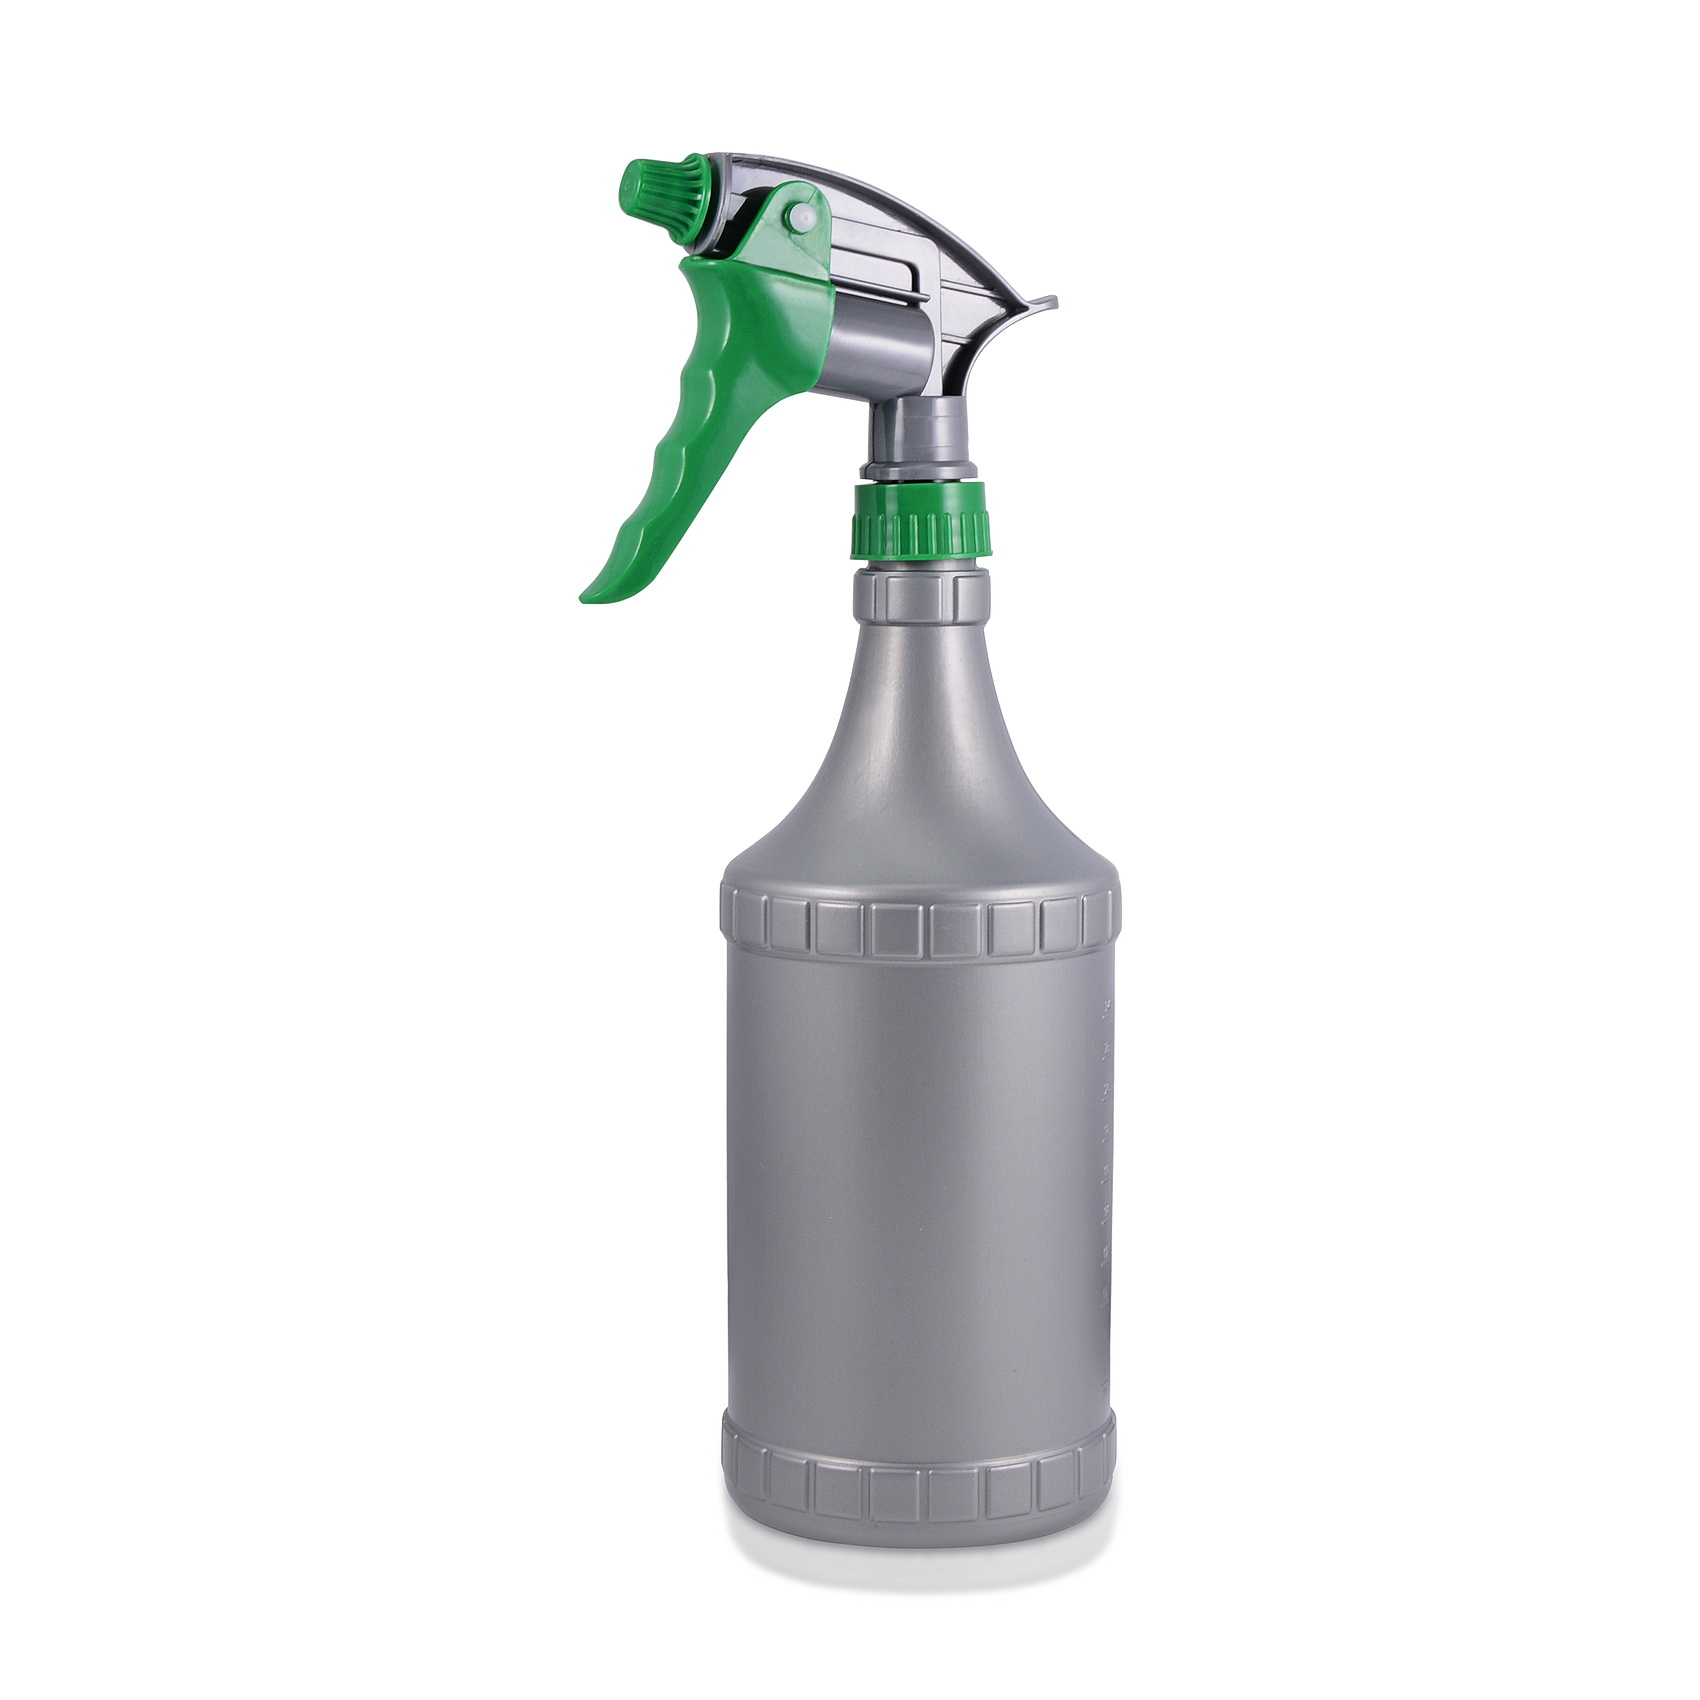 30 oz Gray Commercial-Grade Spray Bottle with Ajustable Spray Settings